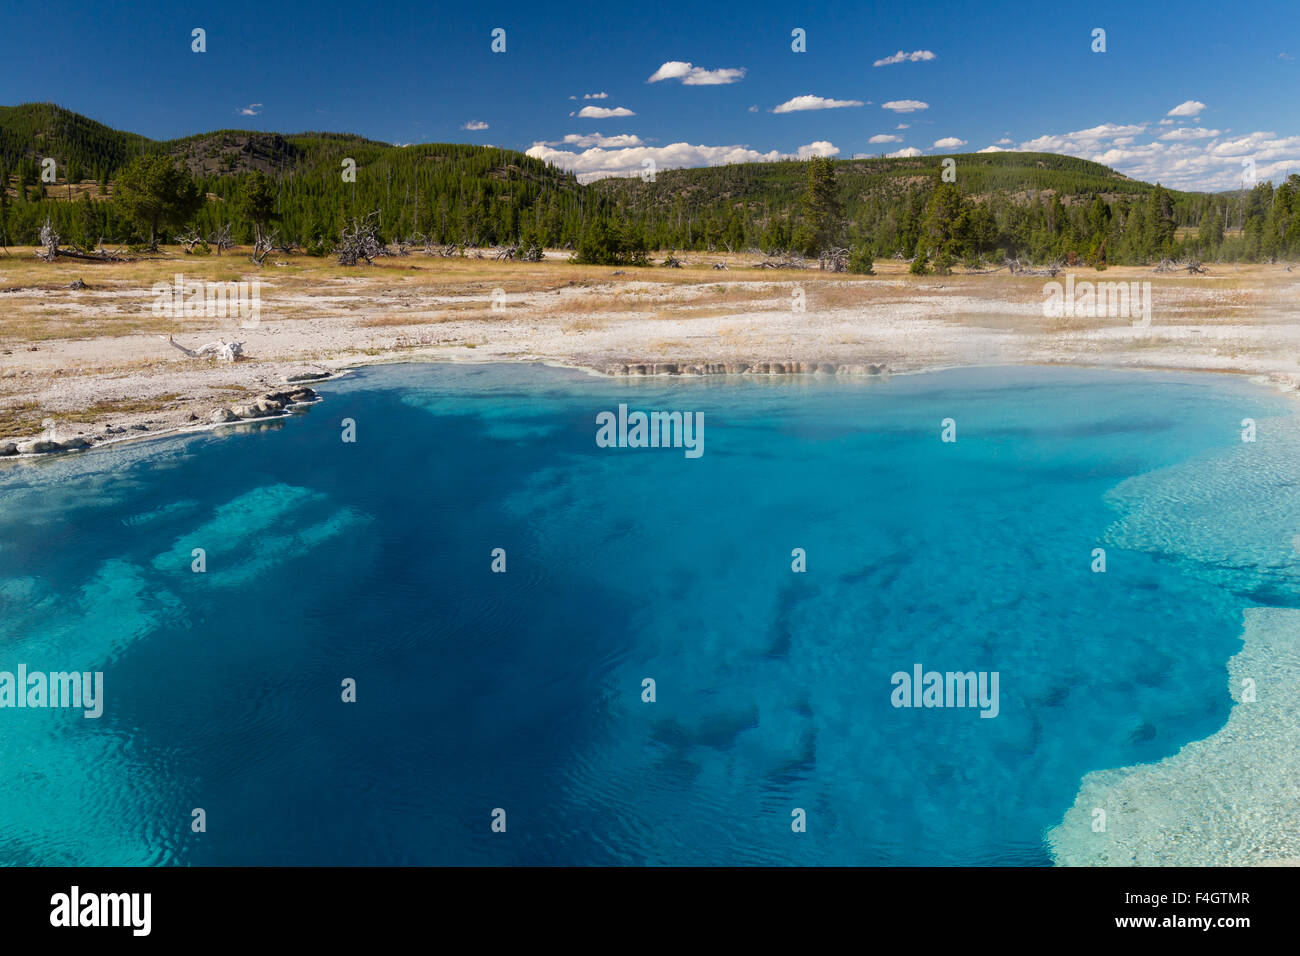 Sapphire Pool at Biscuit Basin, Yellowstone National Park, Wyoming, USA - Stock Image